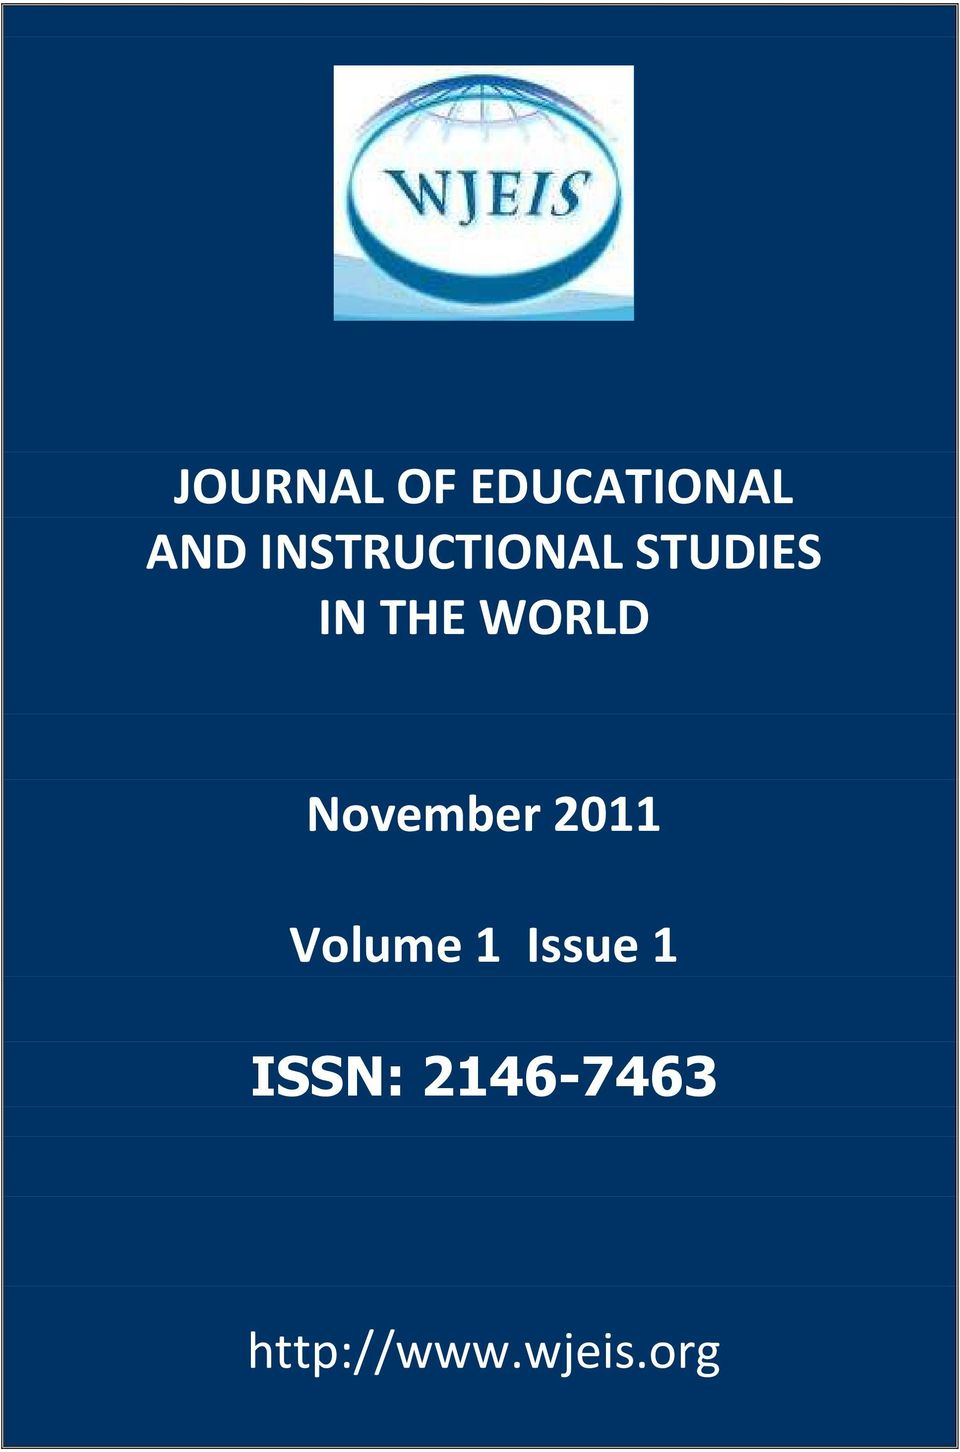 November 2011 Volume 1 Issue